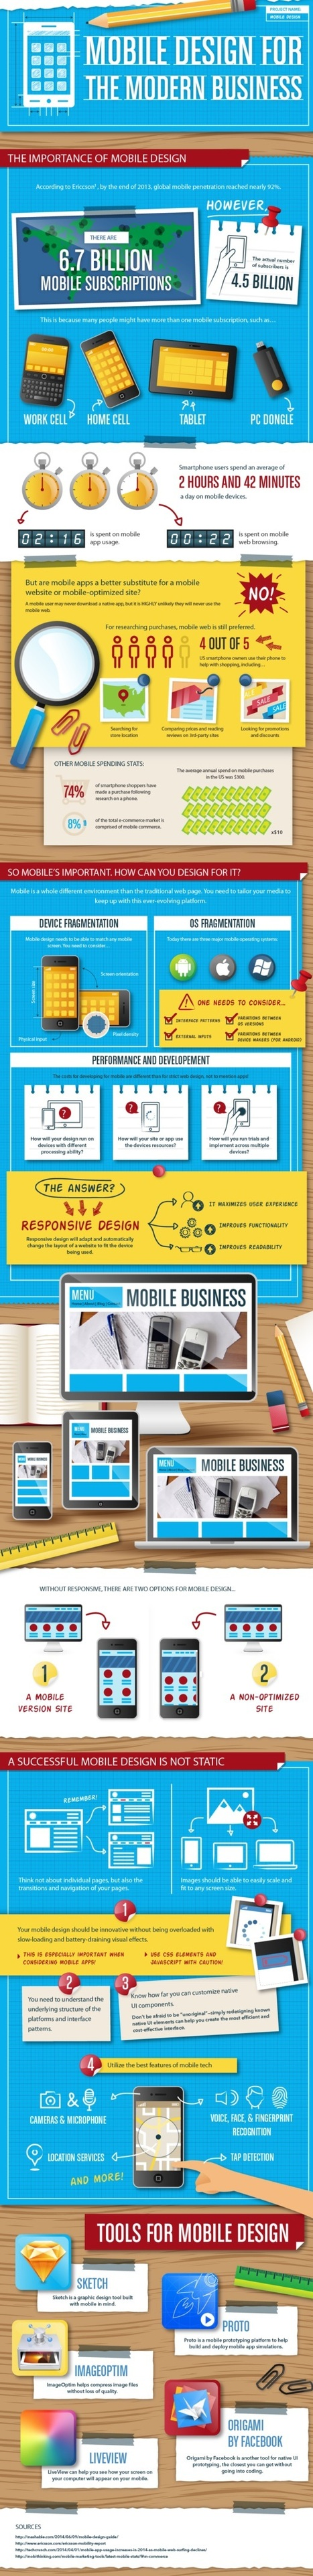 Tools And Tips For Mobile Responsive Design #infographic | Enterprise Solution Architecture | Scoop.it